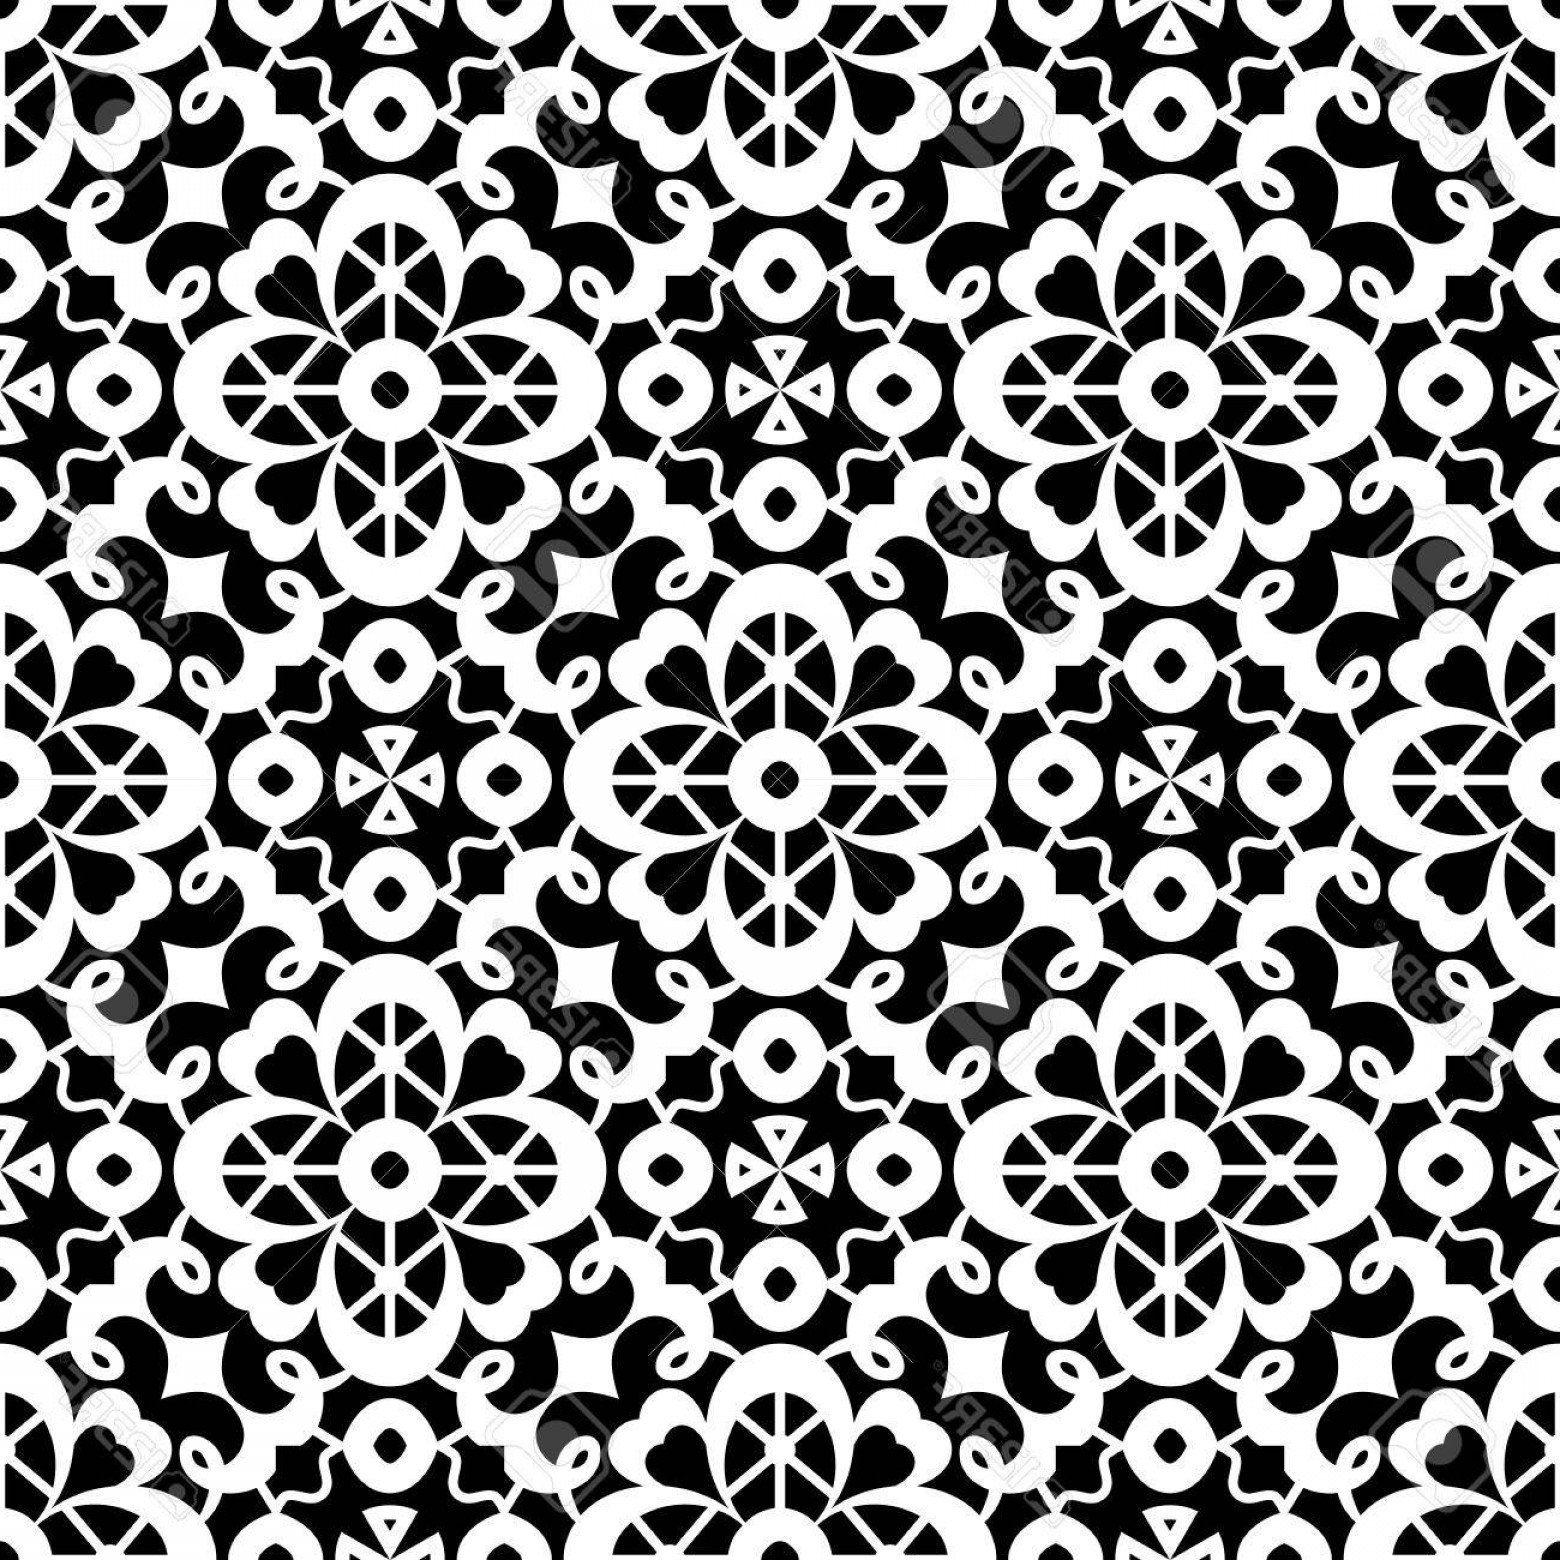 Tulle Black Lace Pattern Vector: Photostock Vector Black And White Tulle Ornament Lace Texture Seamless Pattern